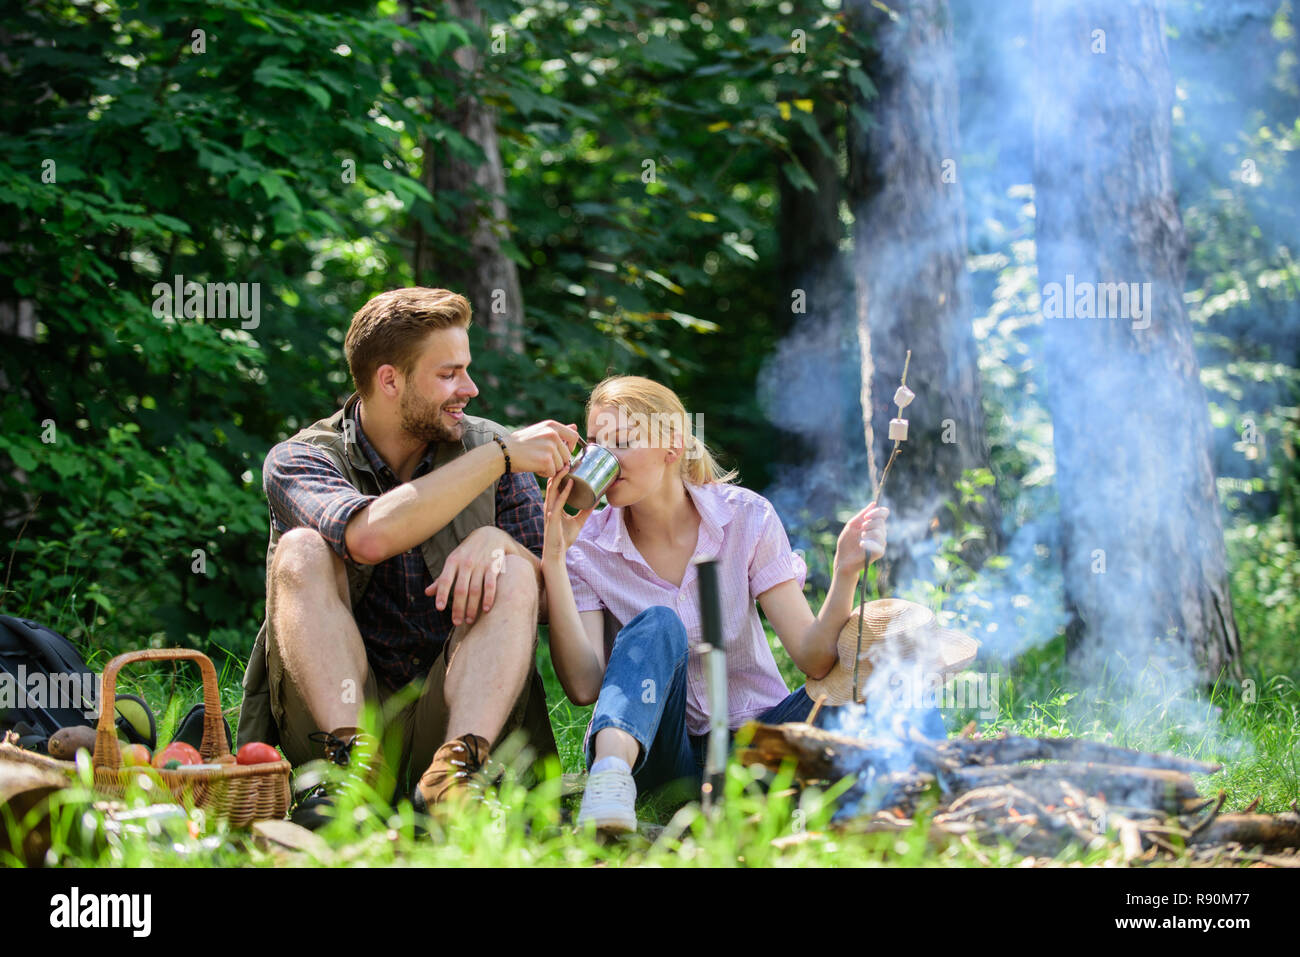 Weekend picnic. Food for hike and camping. Couple sit near bonfire eat snacks and drink. Couple in love camping forest hike. Hike snacks and beverages. Couple take break to eat nature background. - Stock Image